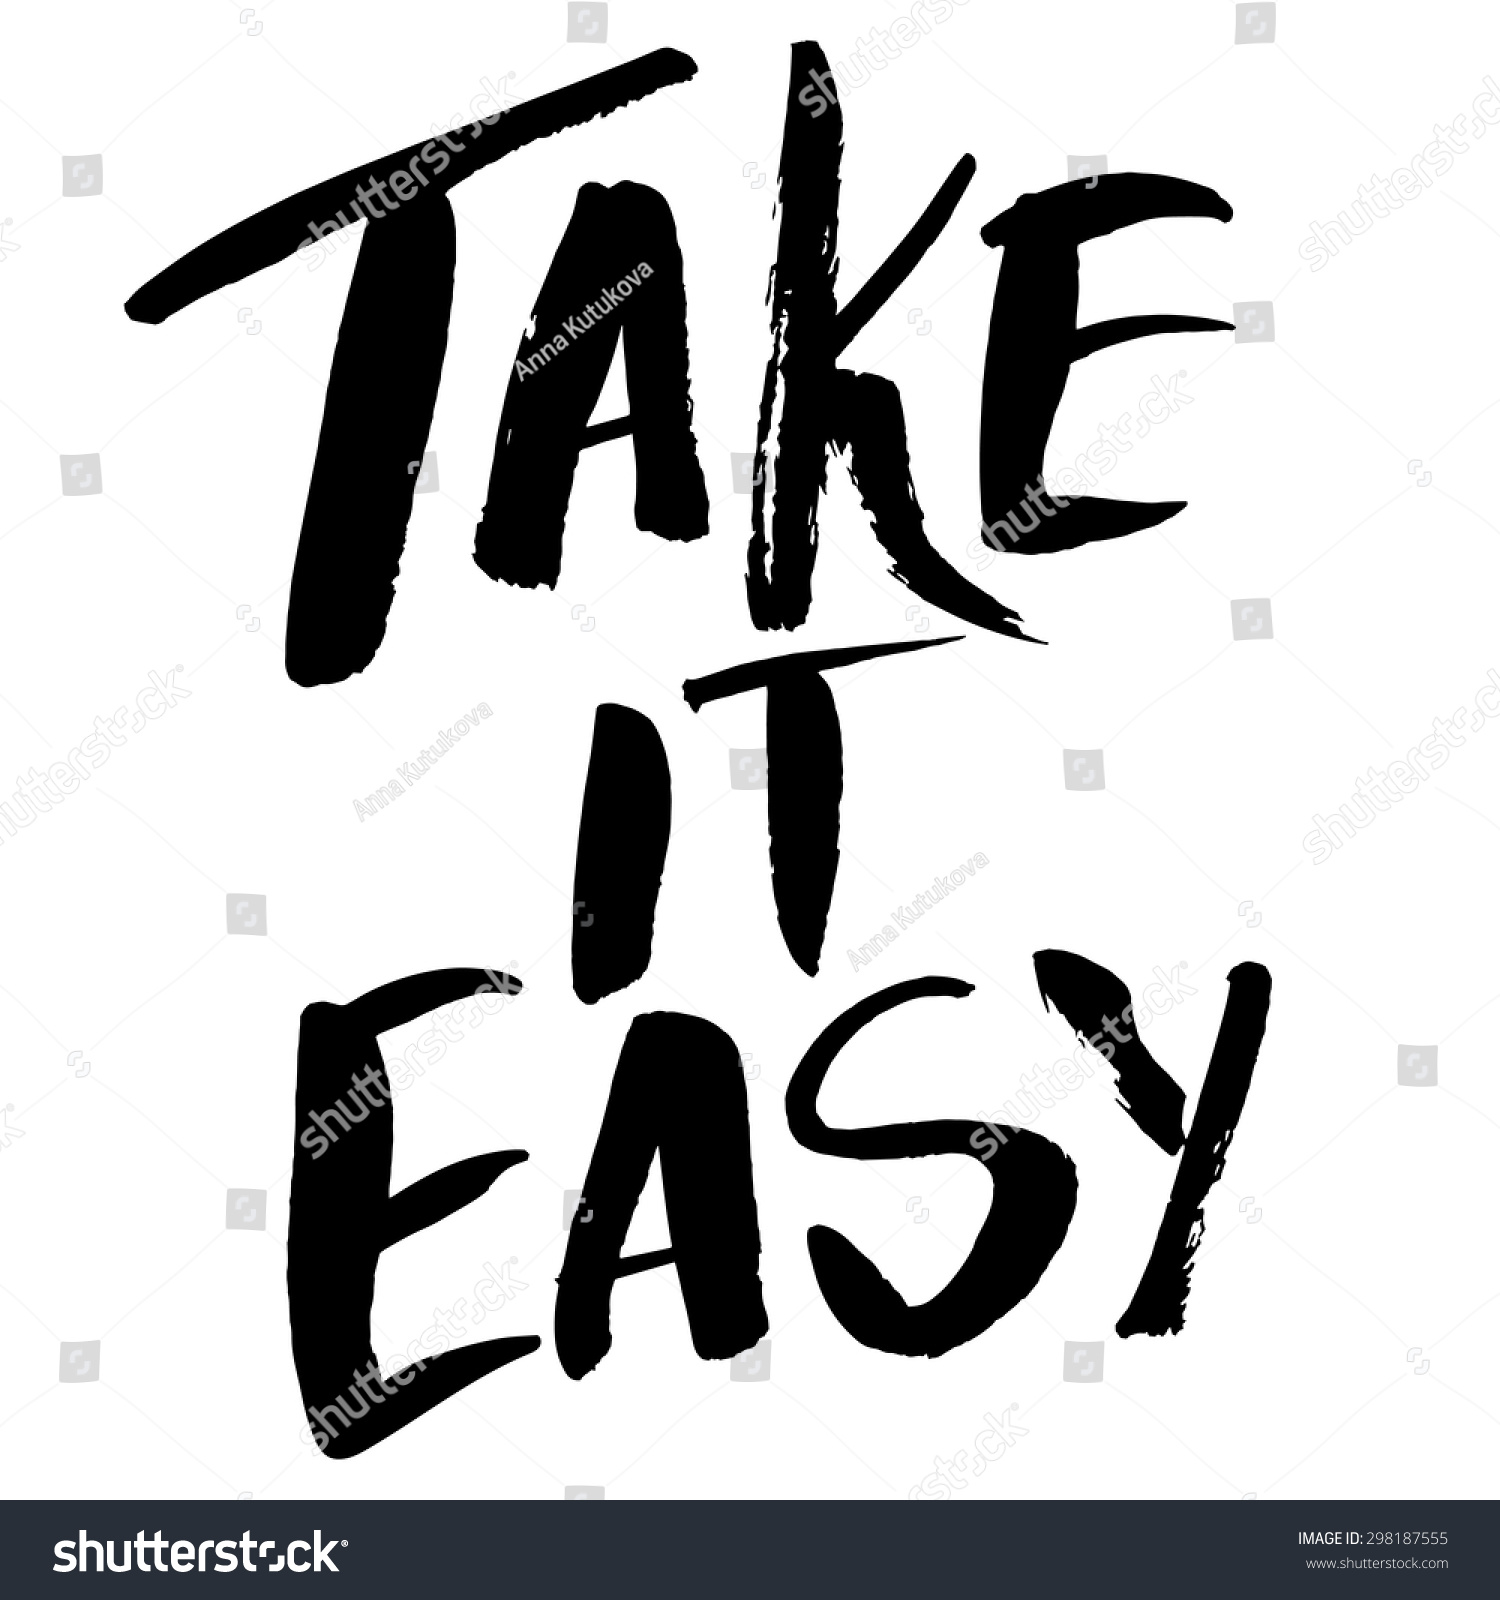 Http Www Shutterstock Com Pic 298187555 Stock Vector Take It Easy Motivational Quote Rough Typography For Poster T Shirt Or Card Vector Brush Html